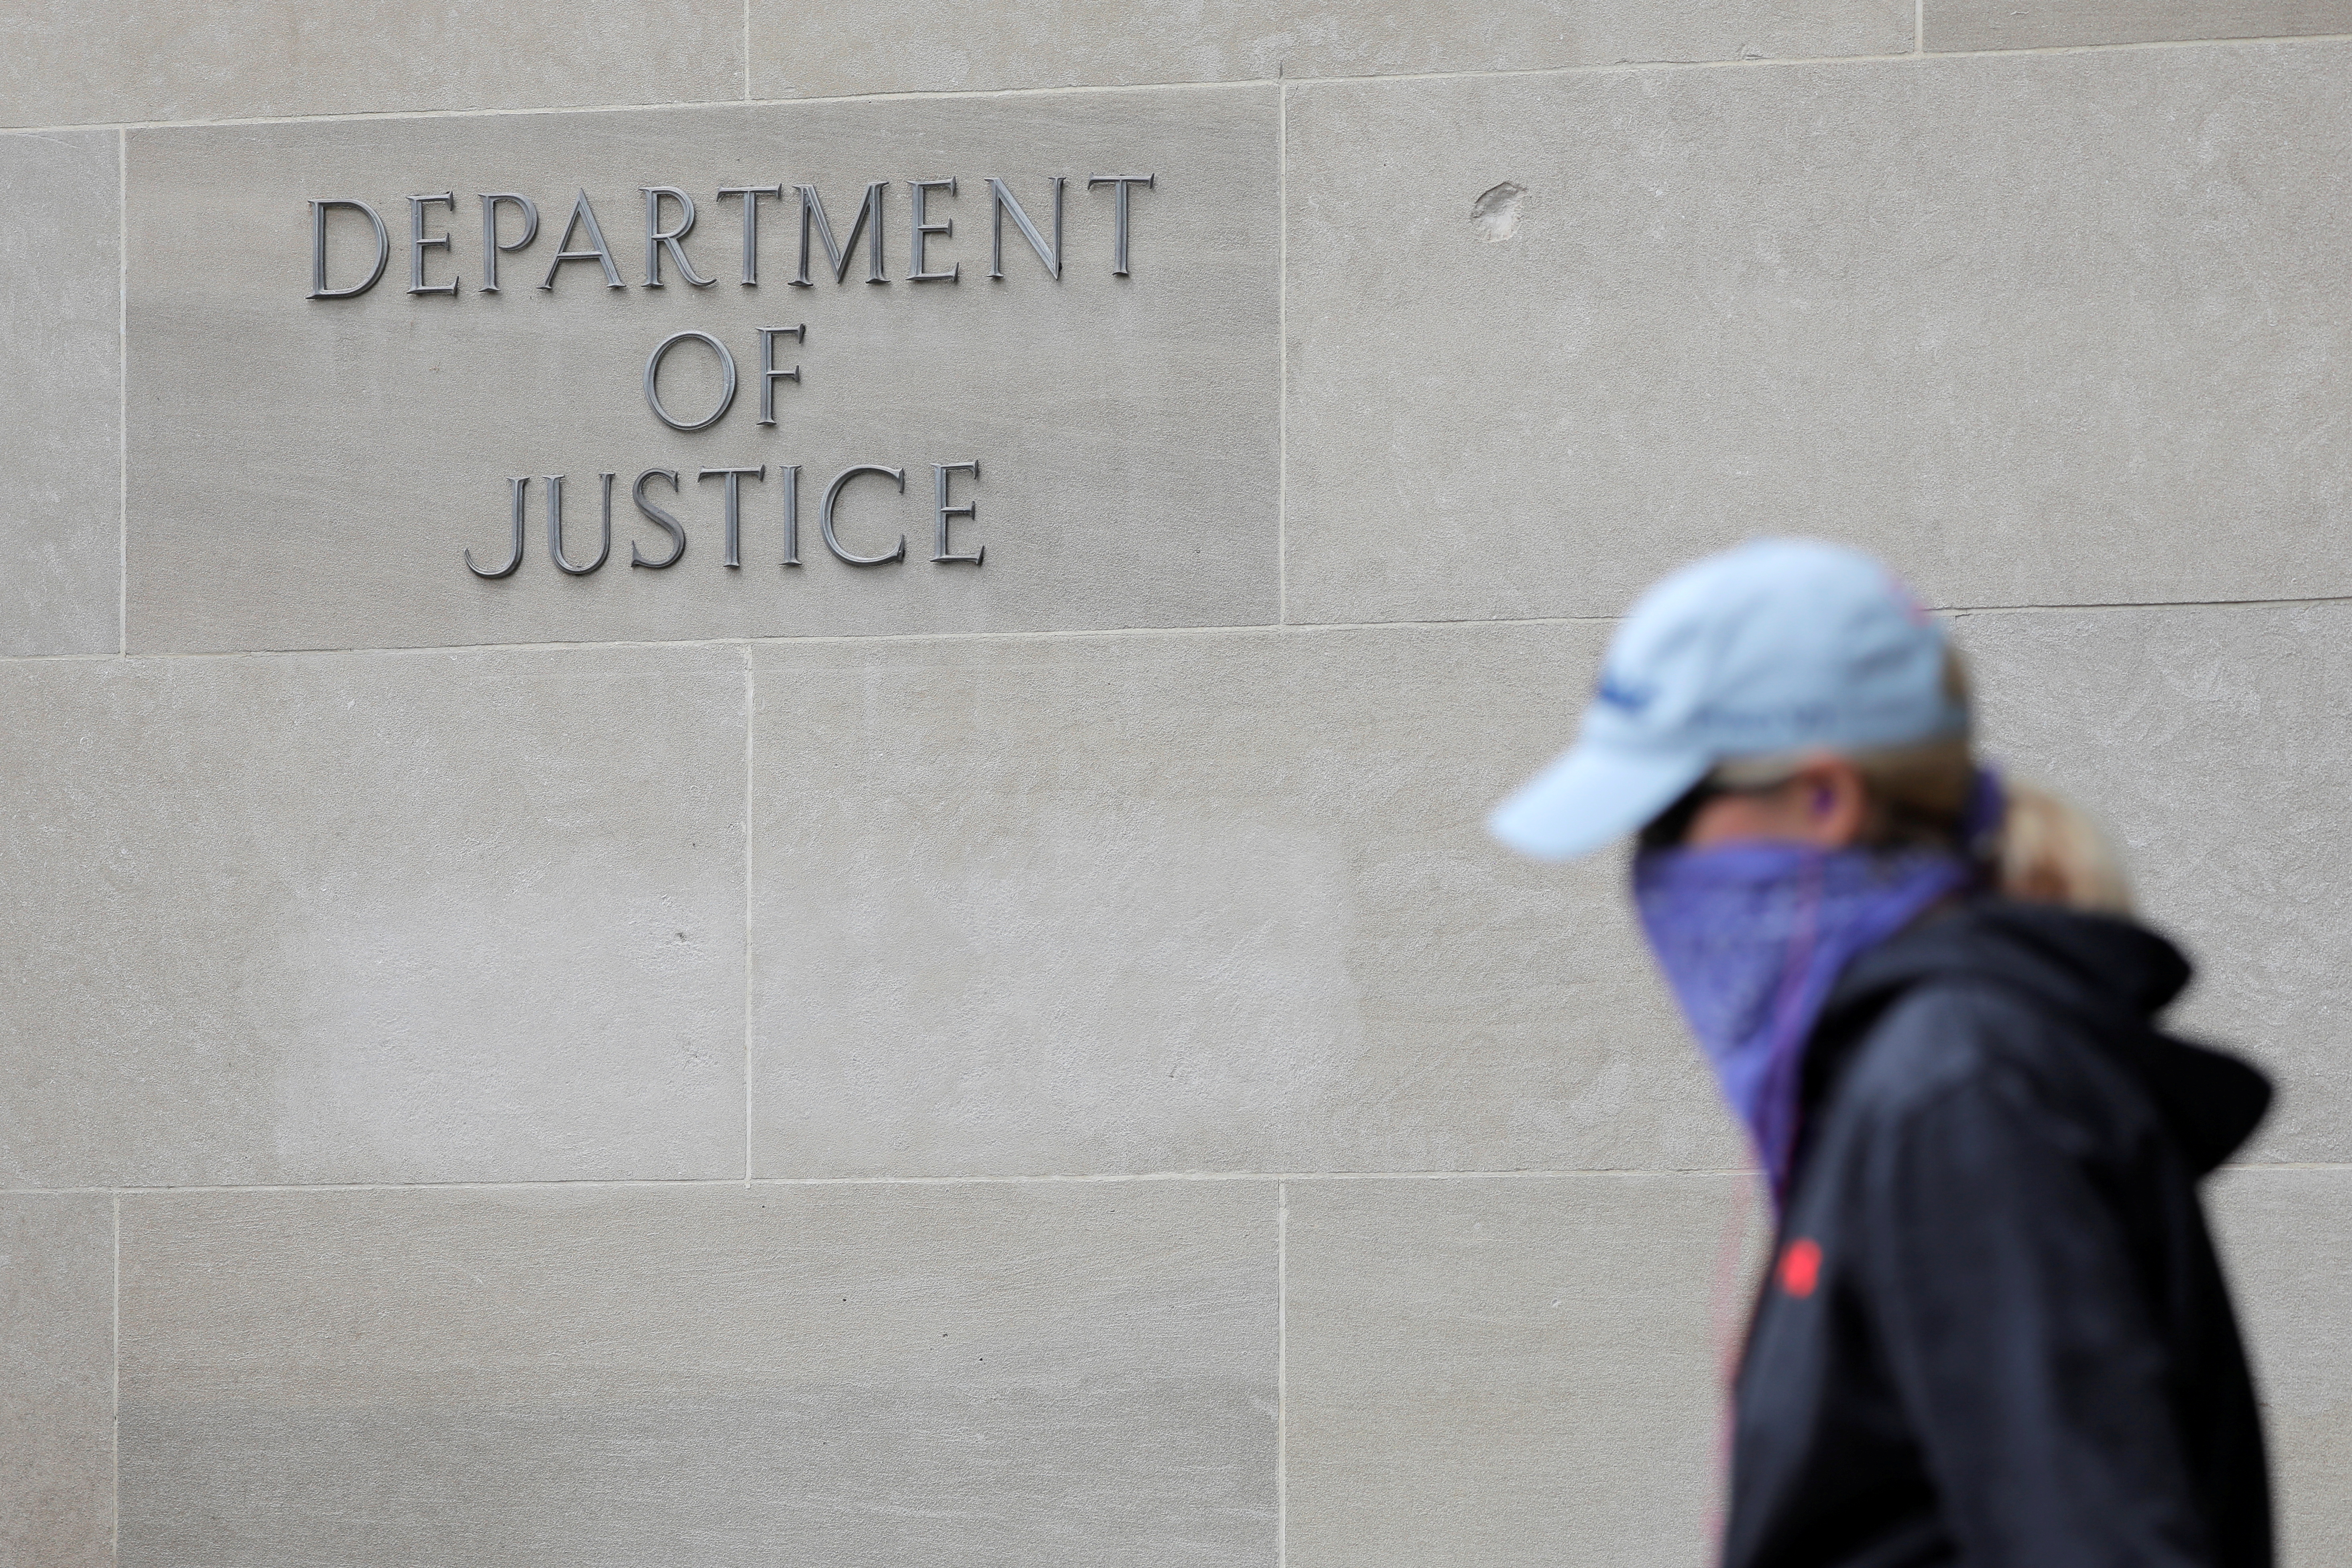 Signage is seen at the headquarters of the United States Department of Justice (DOJ) in Washington, D.C., U.S., May 10, 2021. REUTERS/Andrew Kelly/File Photo